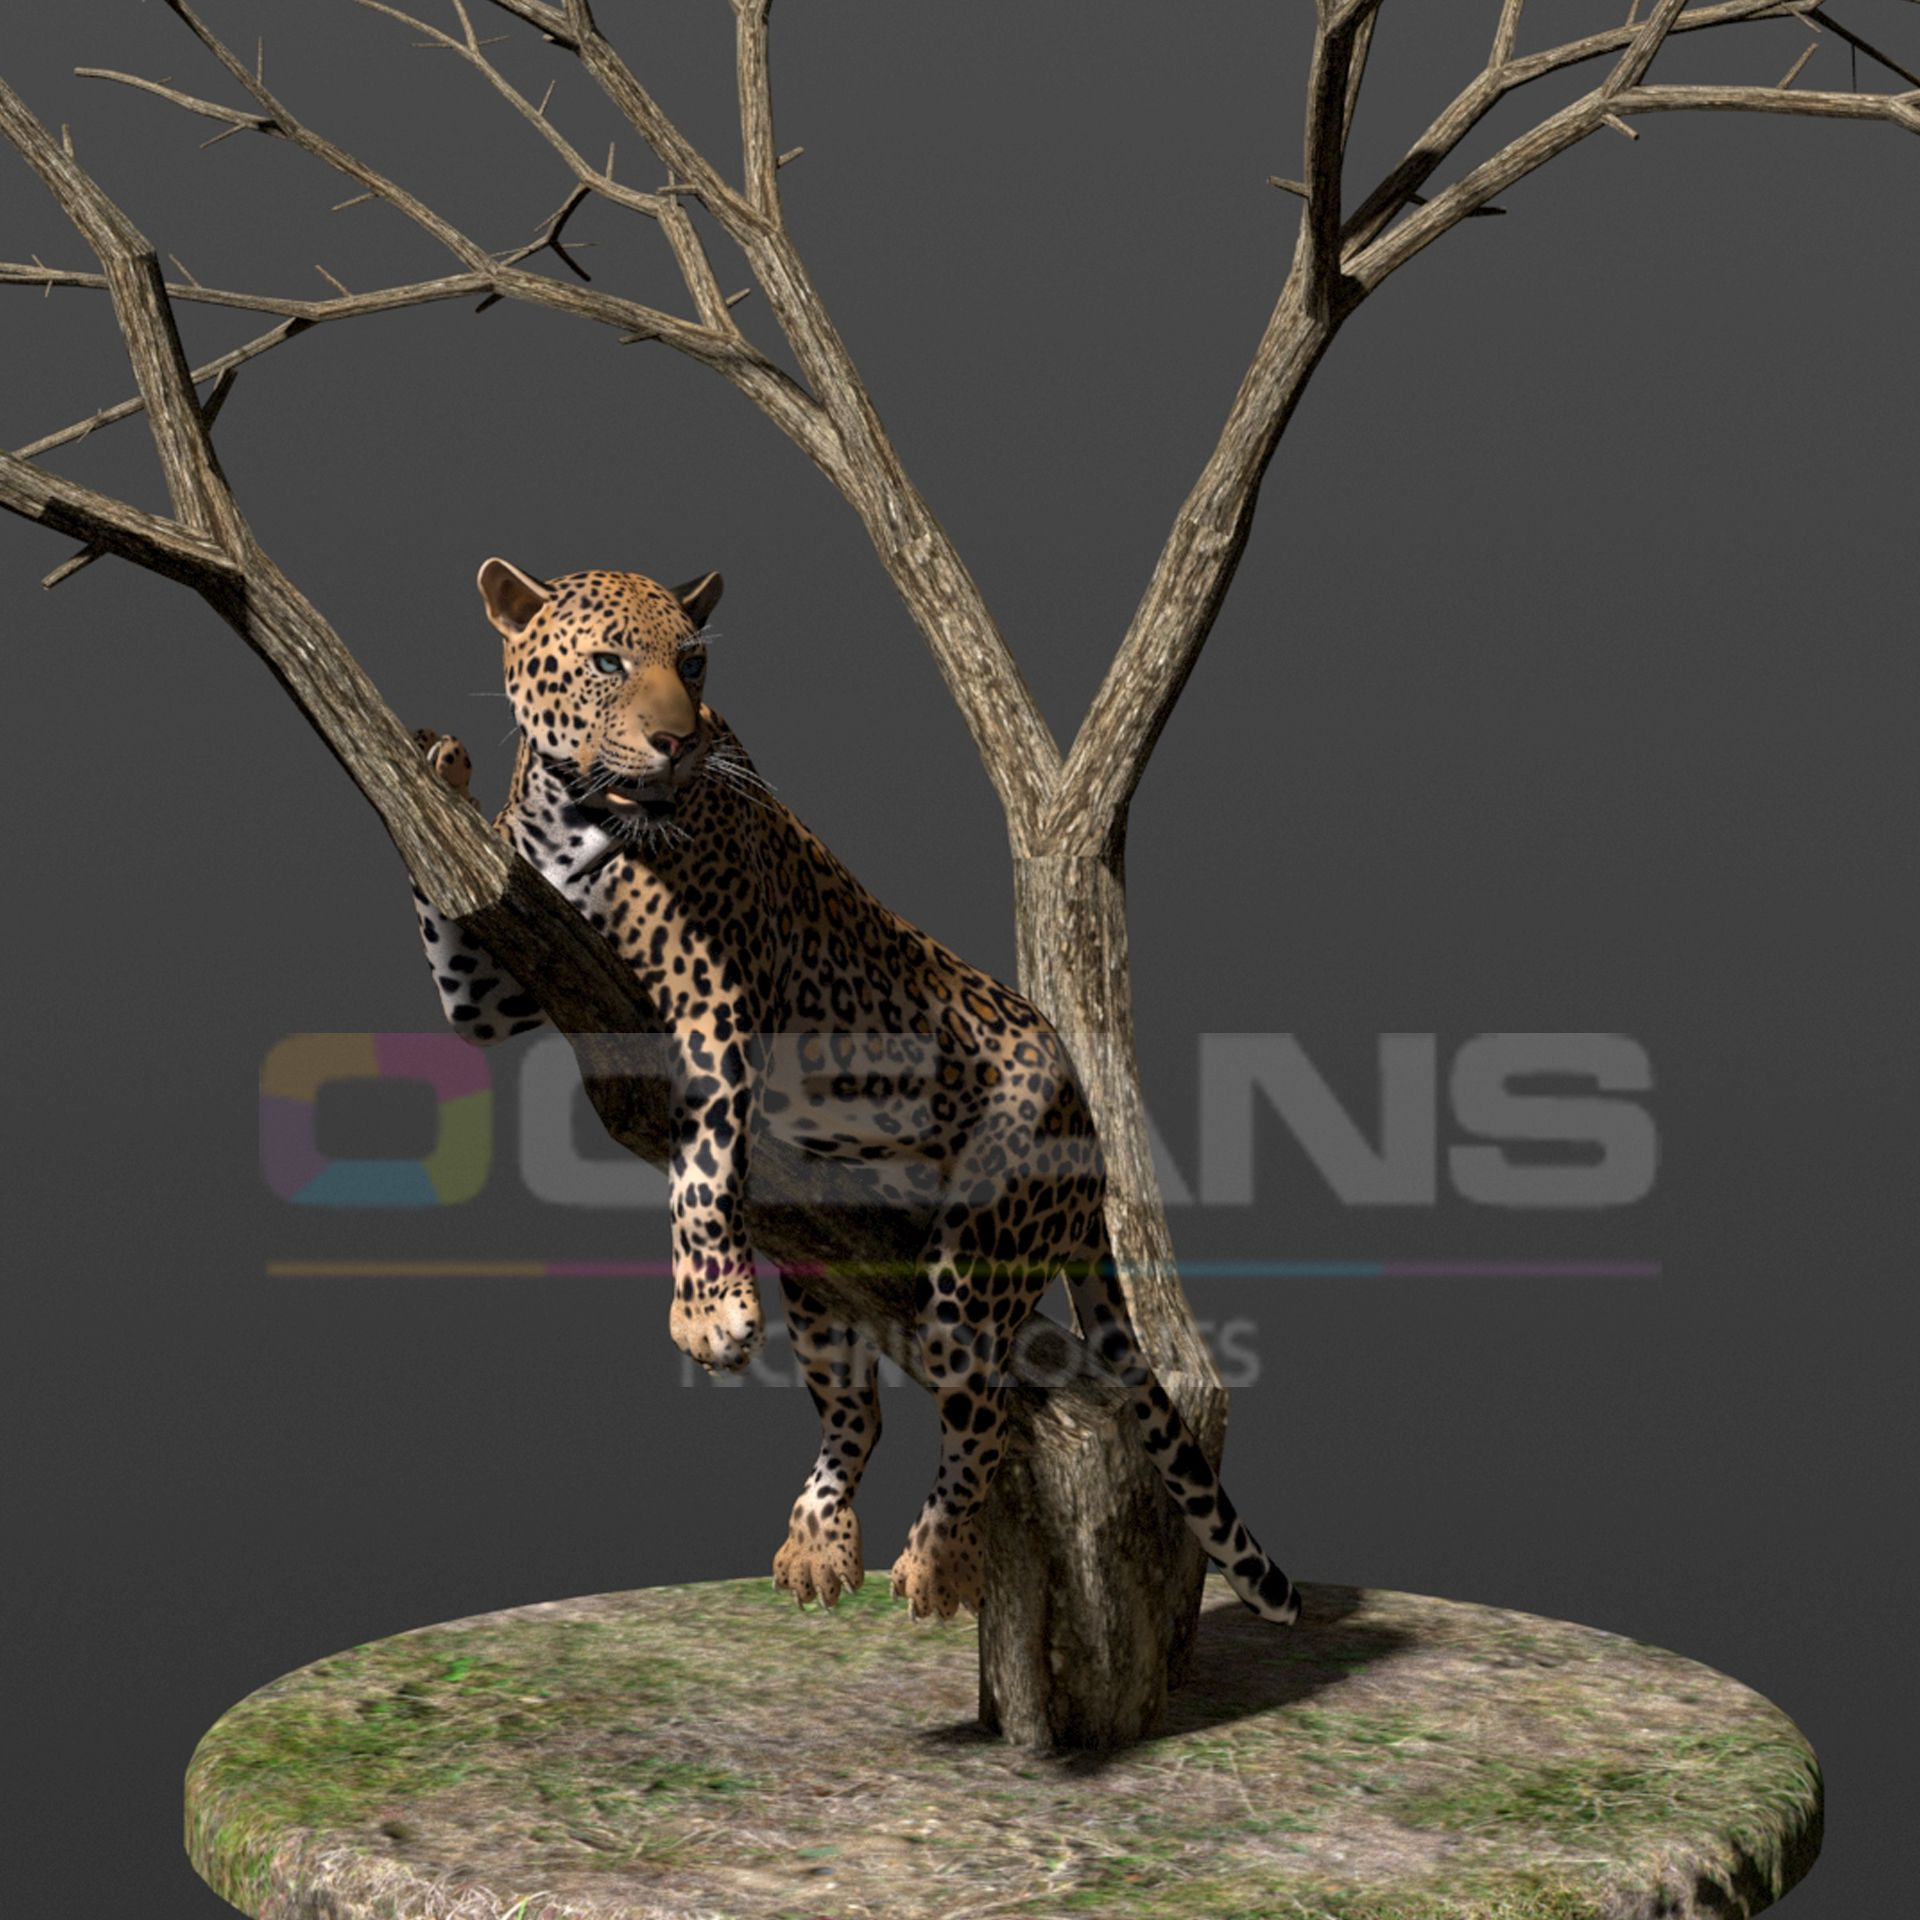 Leopard Animated Image Artificial intelligence